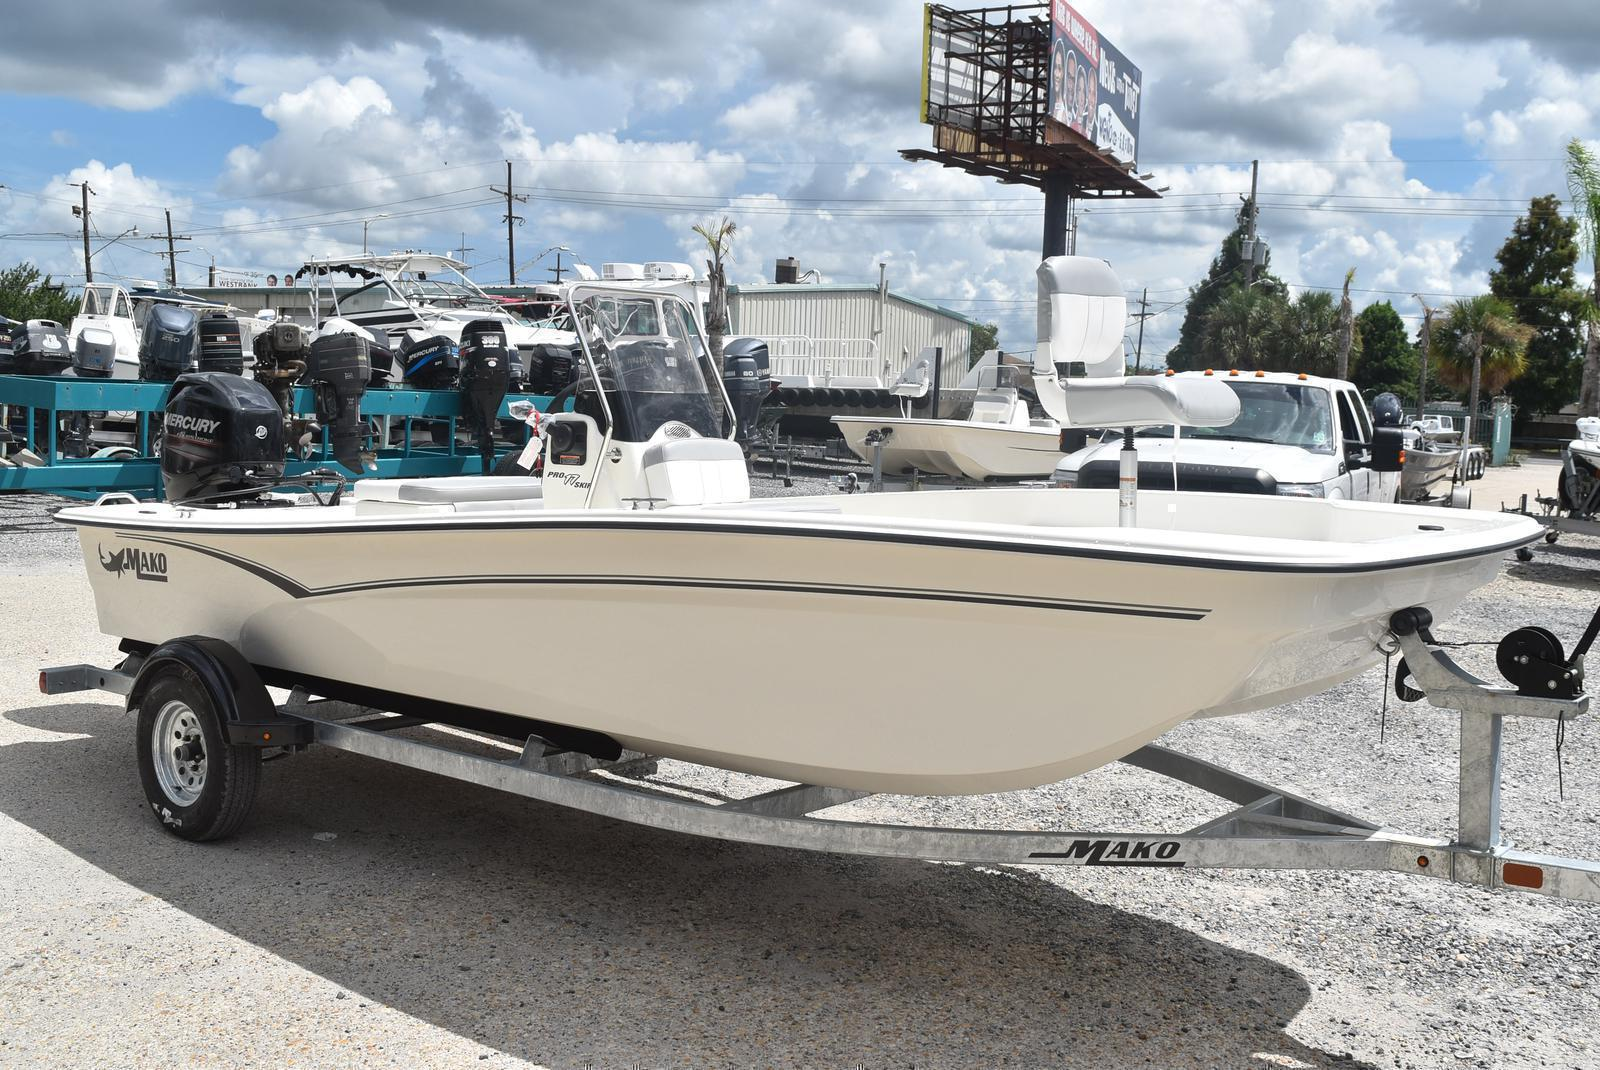 2020 Mako boat for sale, model of the boat is Pro Skiff 17, 75 ELPT & Image # 654 of 702